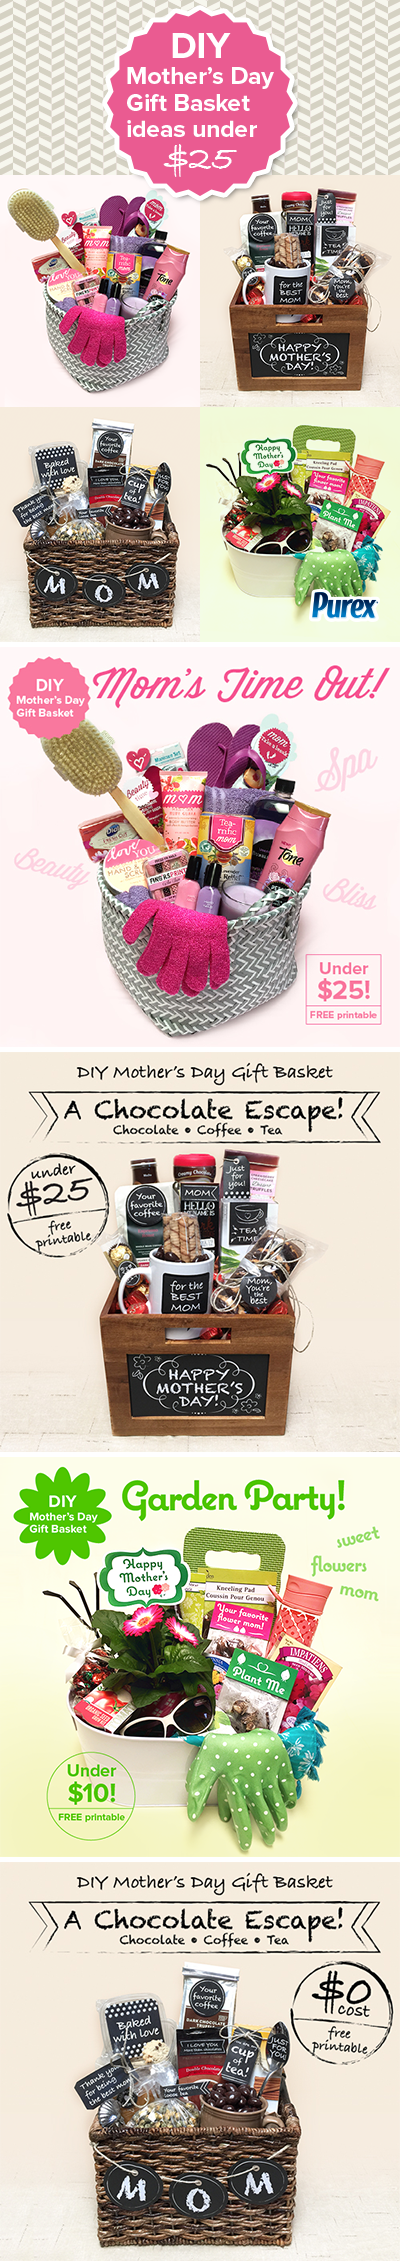 Page Not Found Purex Diy Mother S Day Gift Basket Diy Gifts